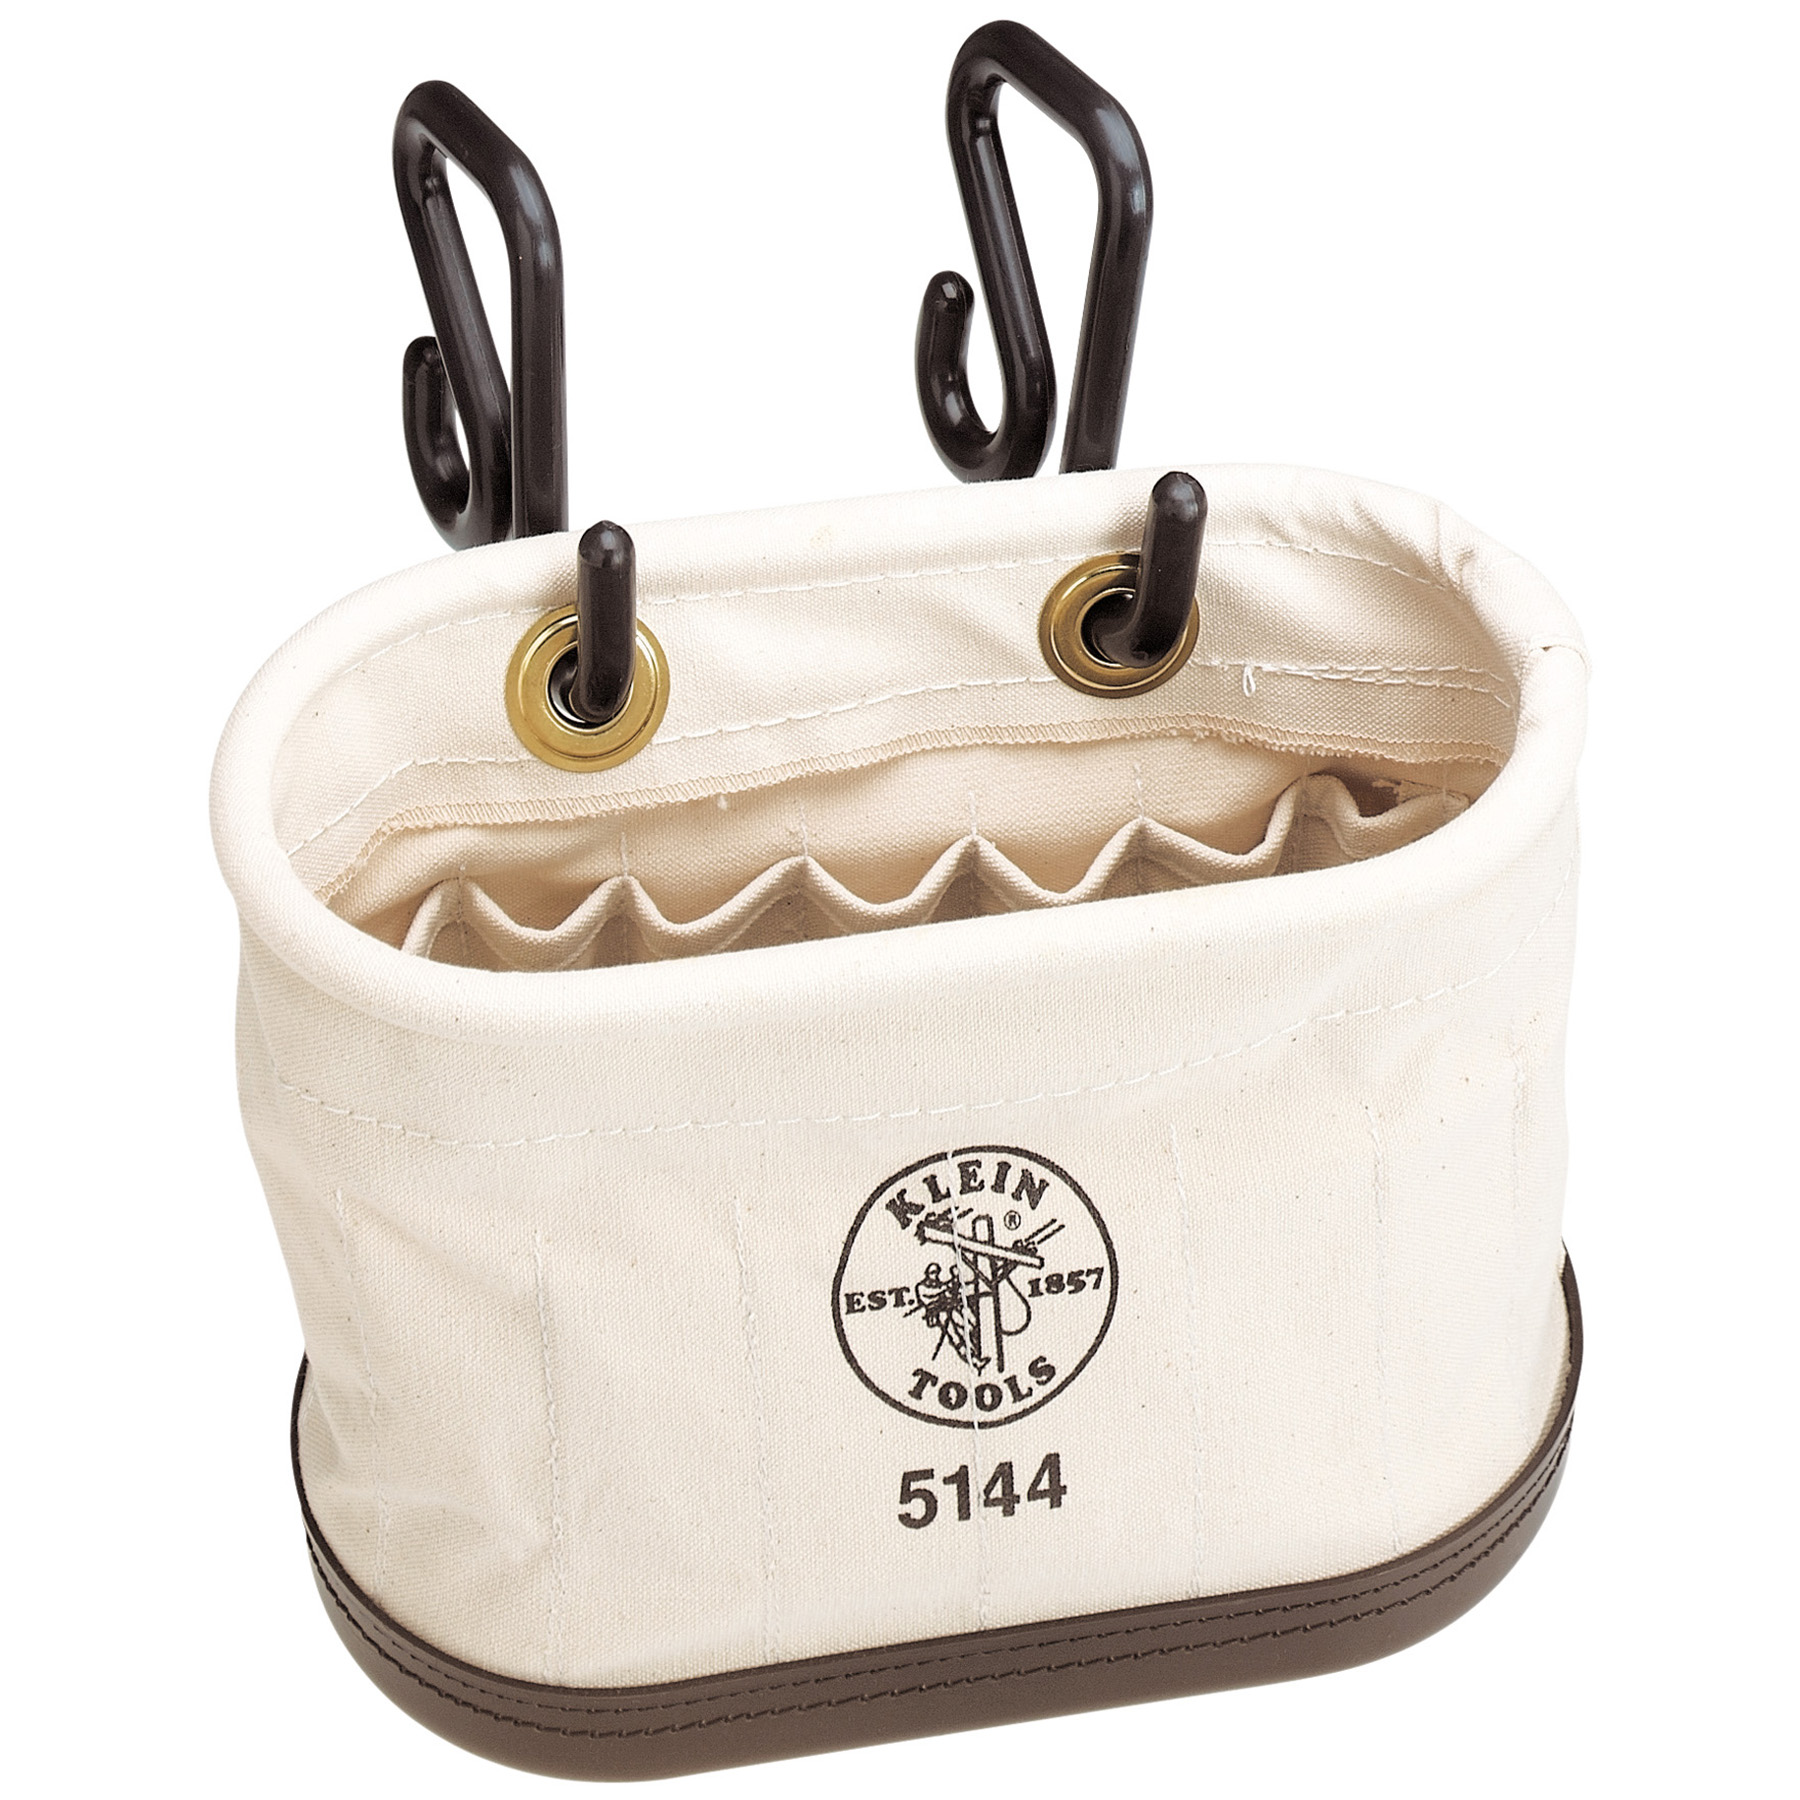 Klein Aerial-Basket Oval Bucket with 15 Interior Pockets